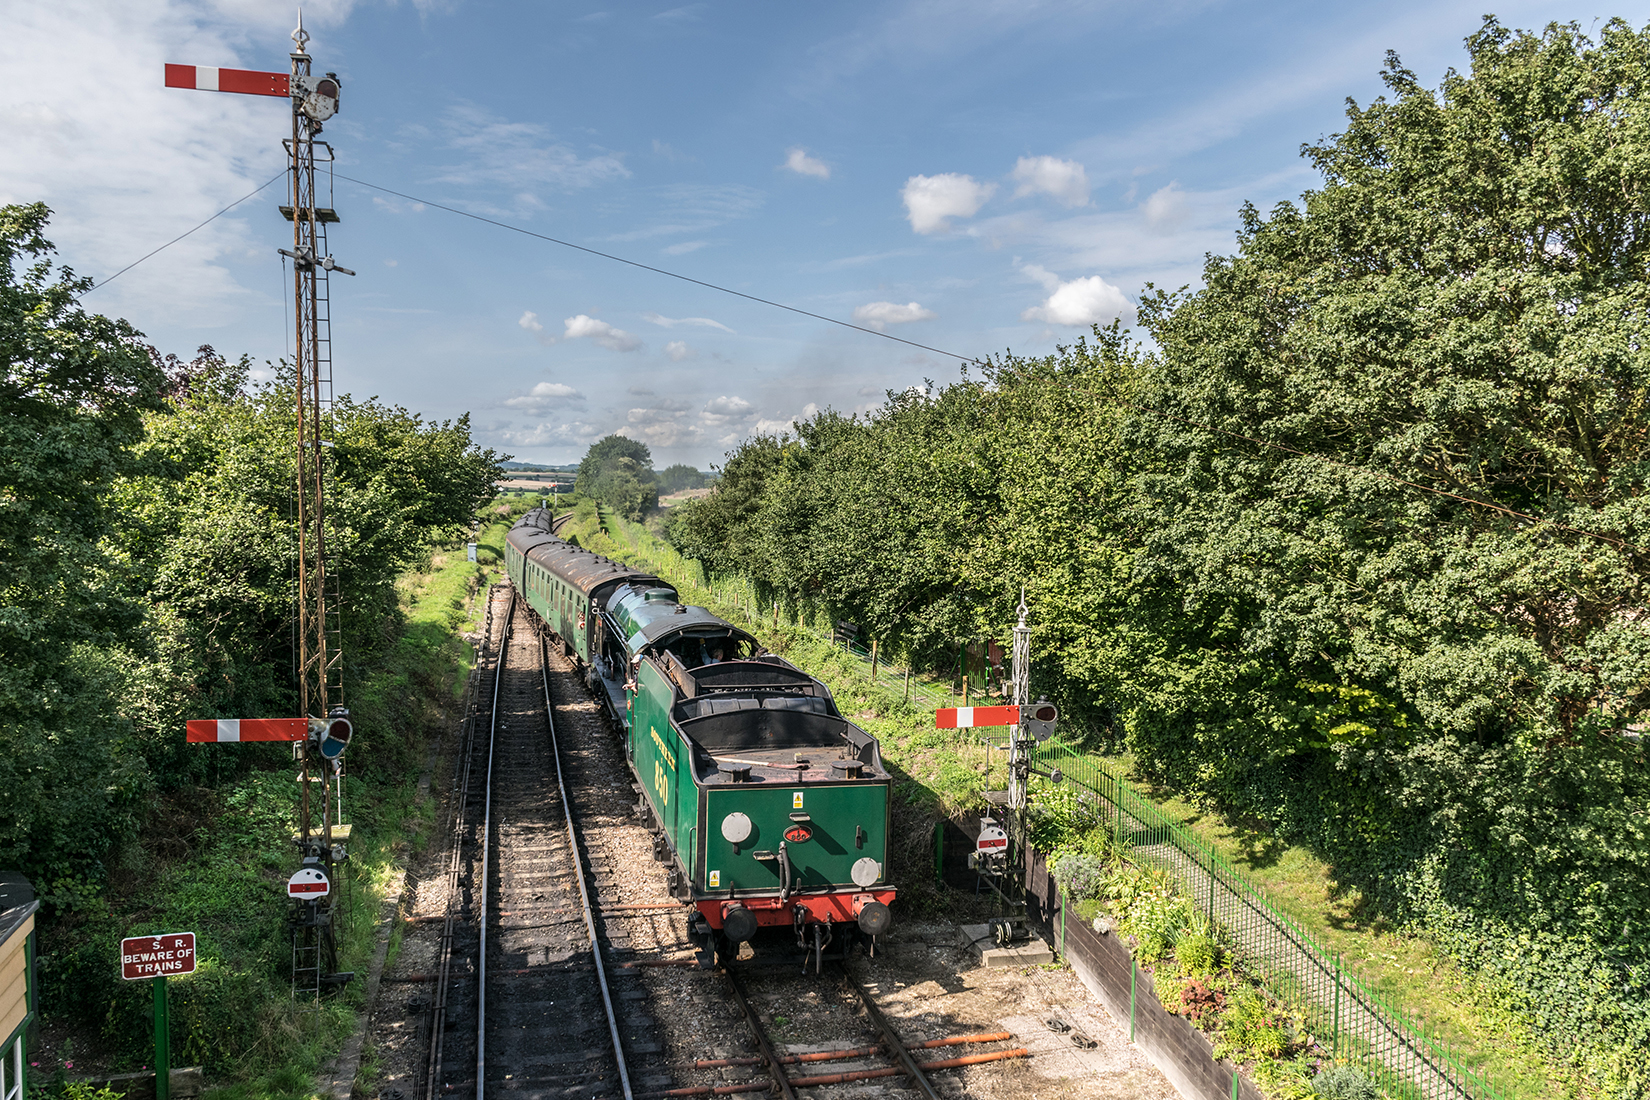 850 'Lord Nelson' pulling into Ropley station with an Alton bound train from Alresford